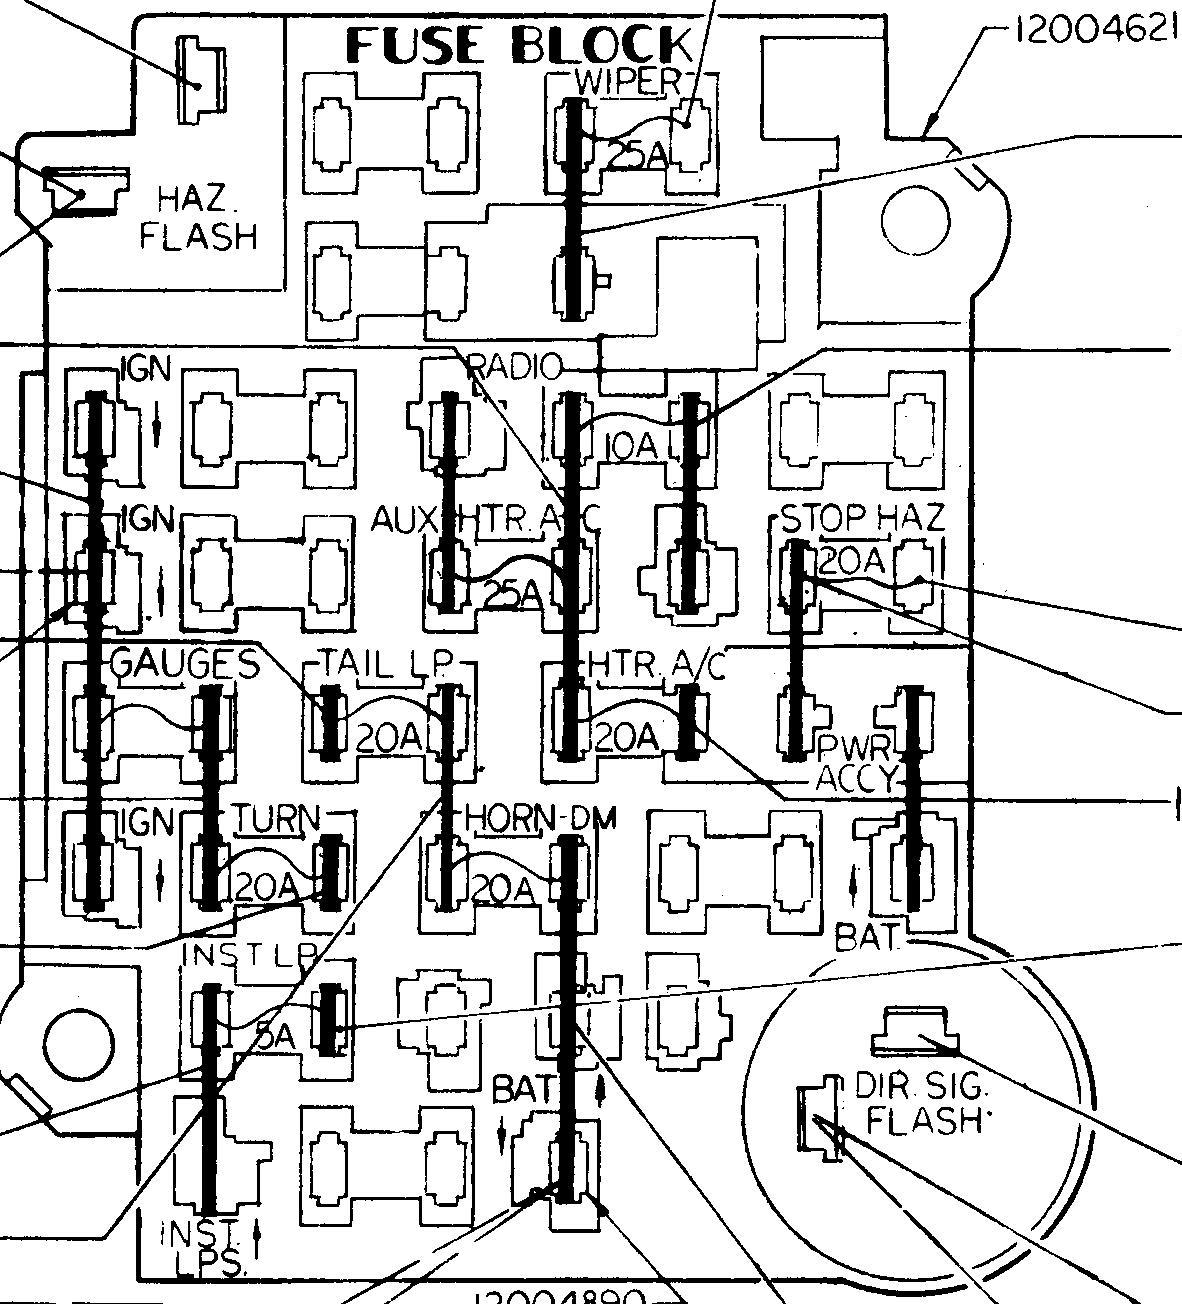 hight resolution of gm fuse box diagram wiring diagram sample fuse block wiring diagram 84 porsche 944 fuse box